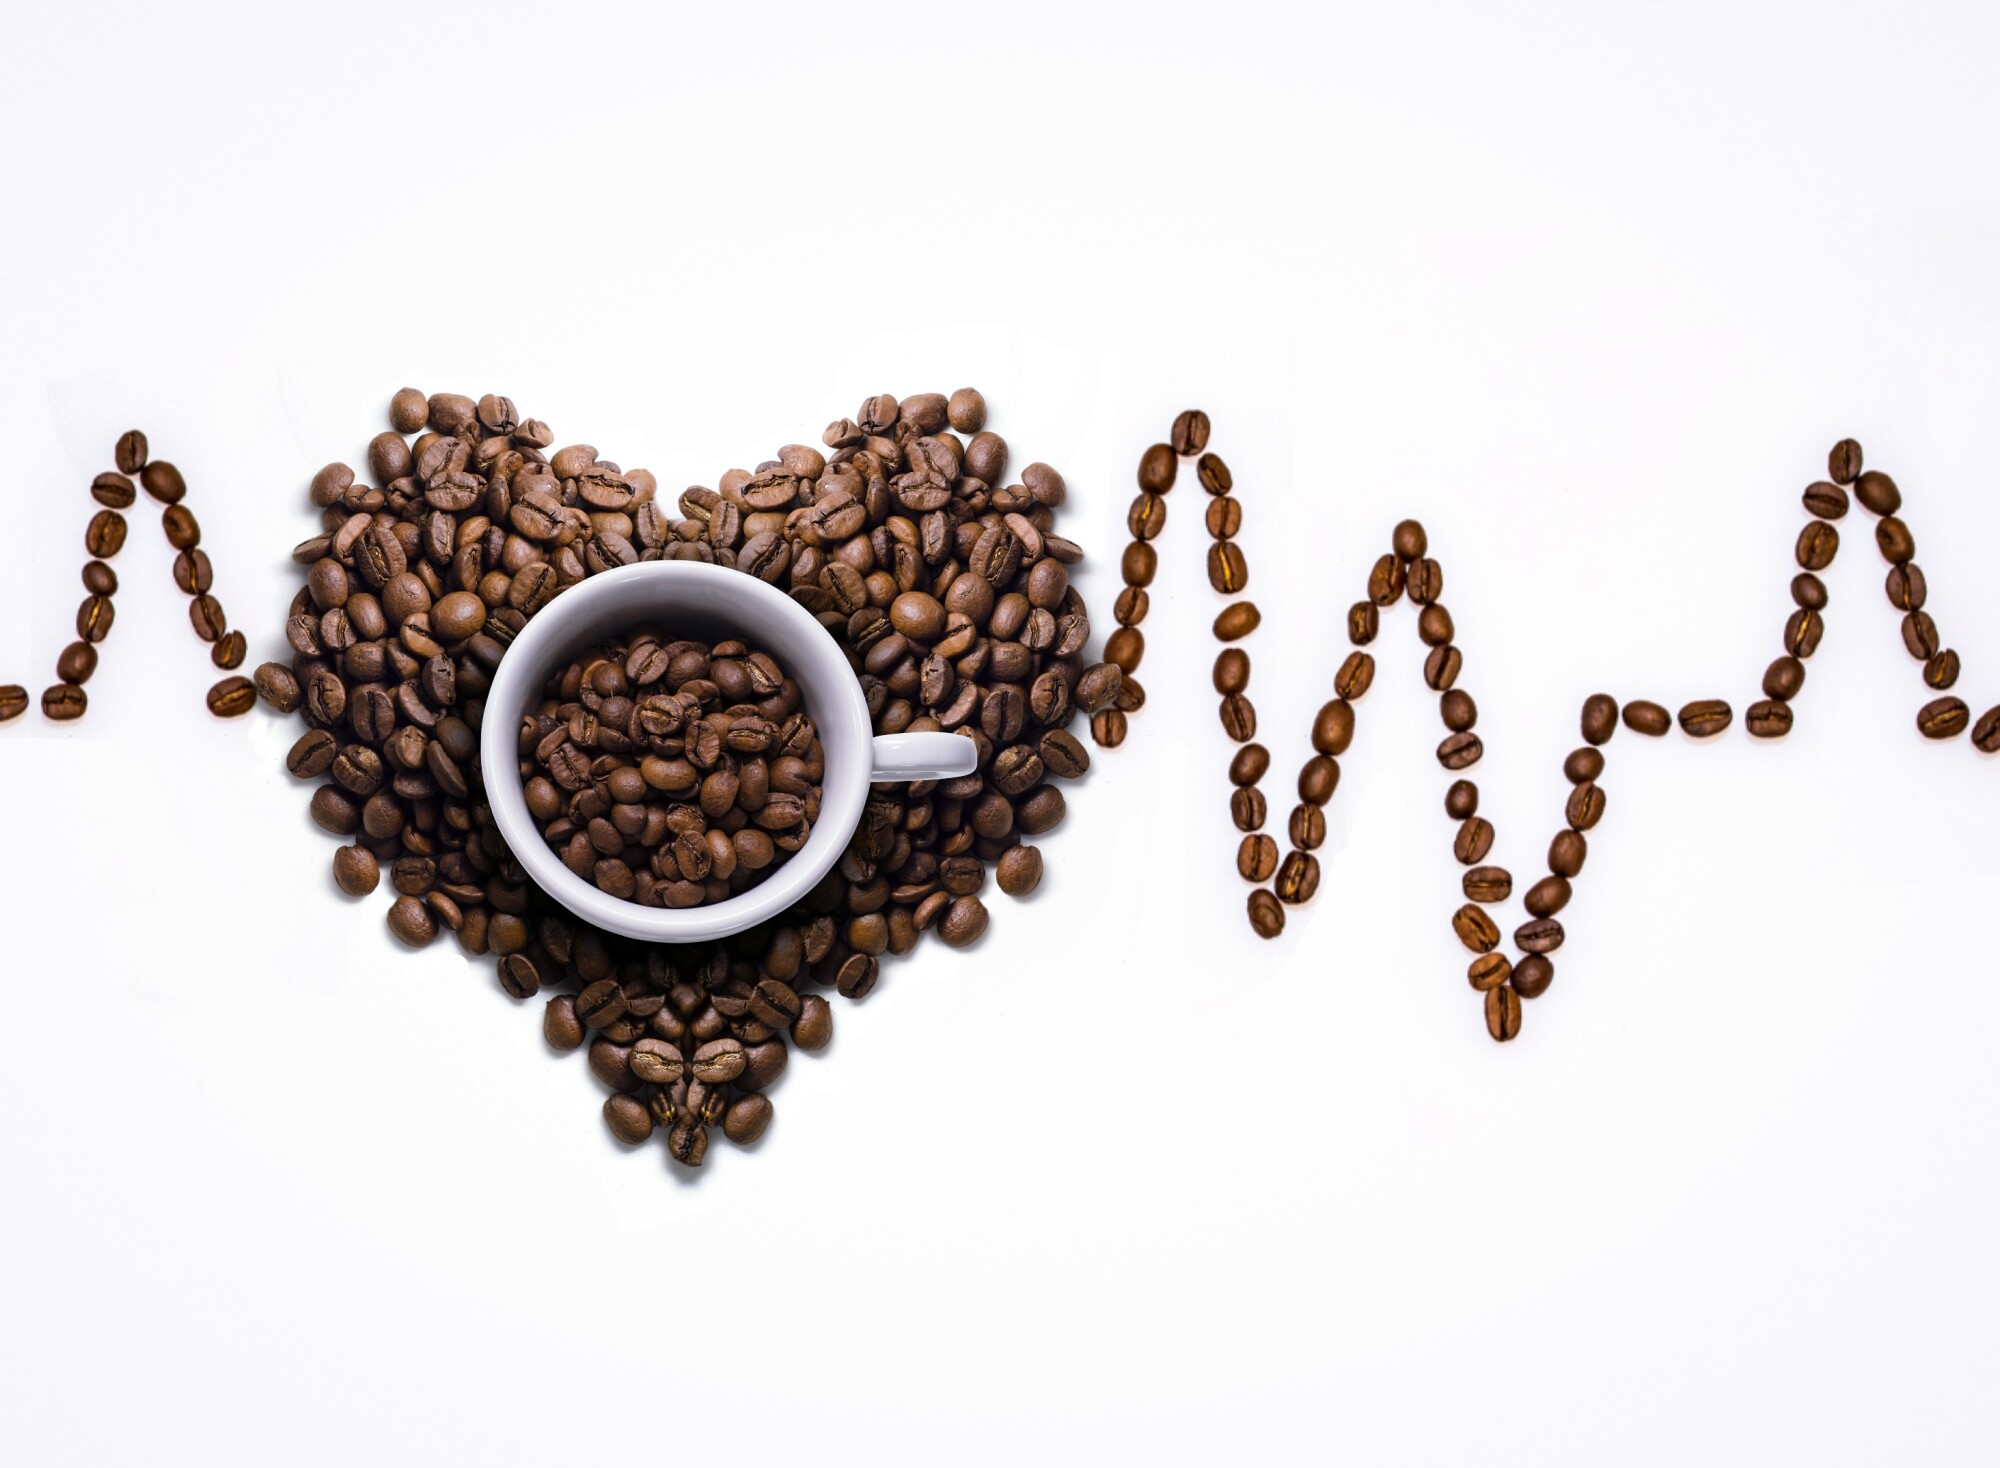 Is Caffeine Good For Your Health? Experts Say Yes